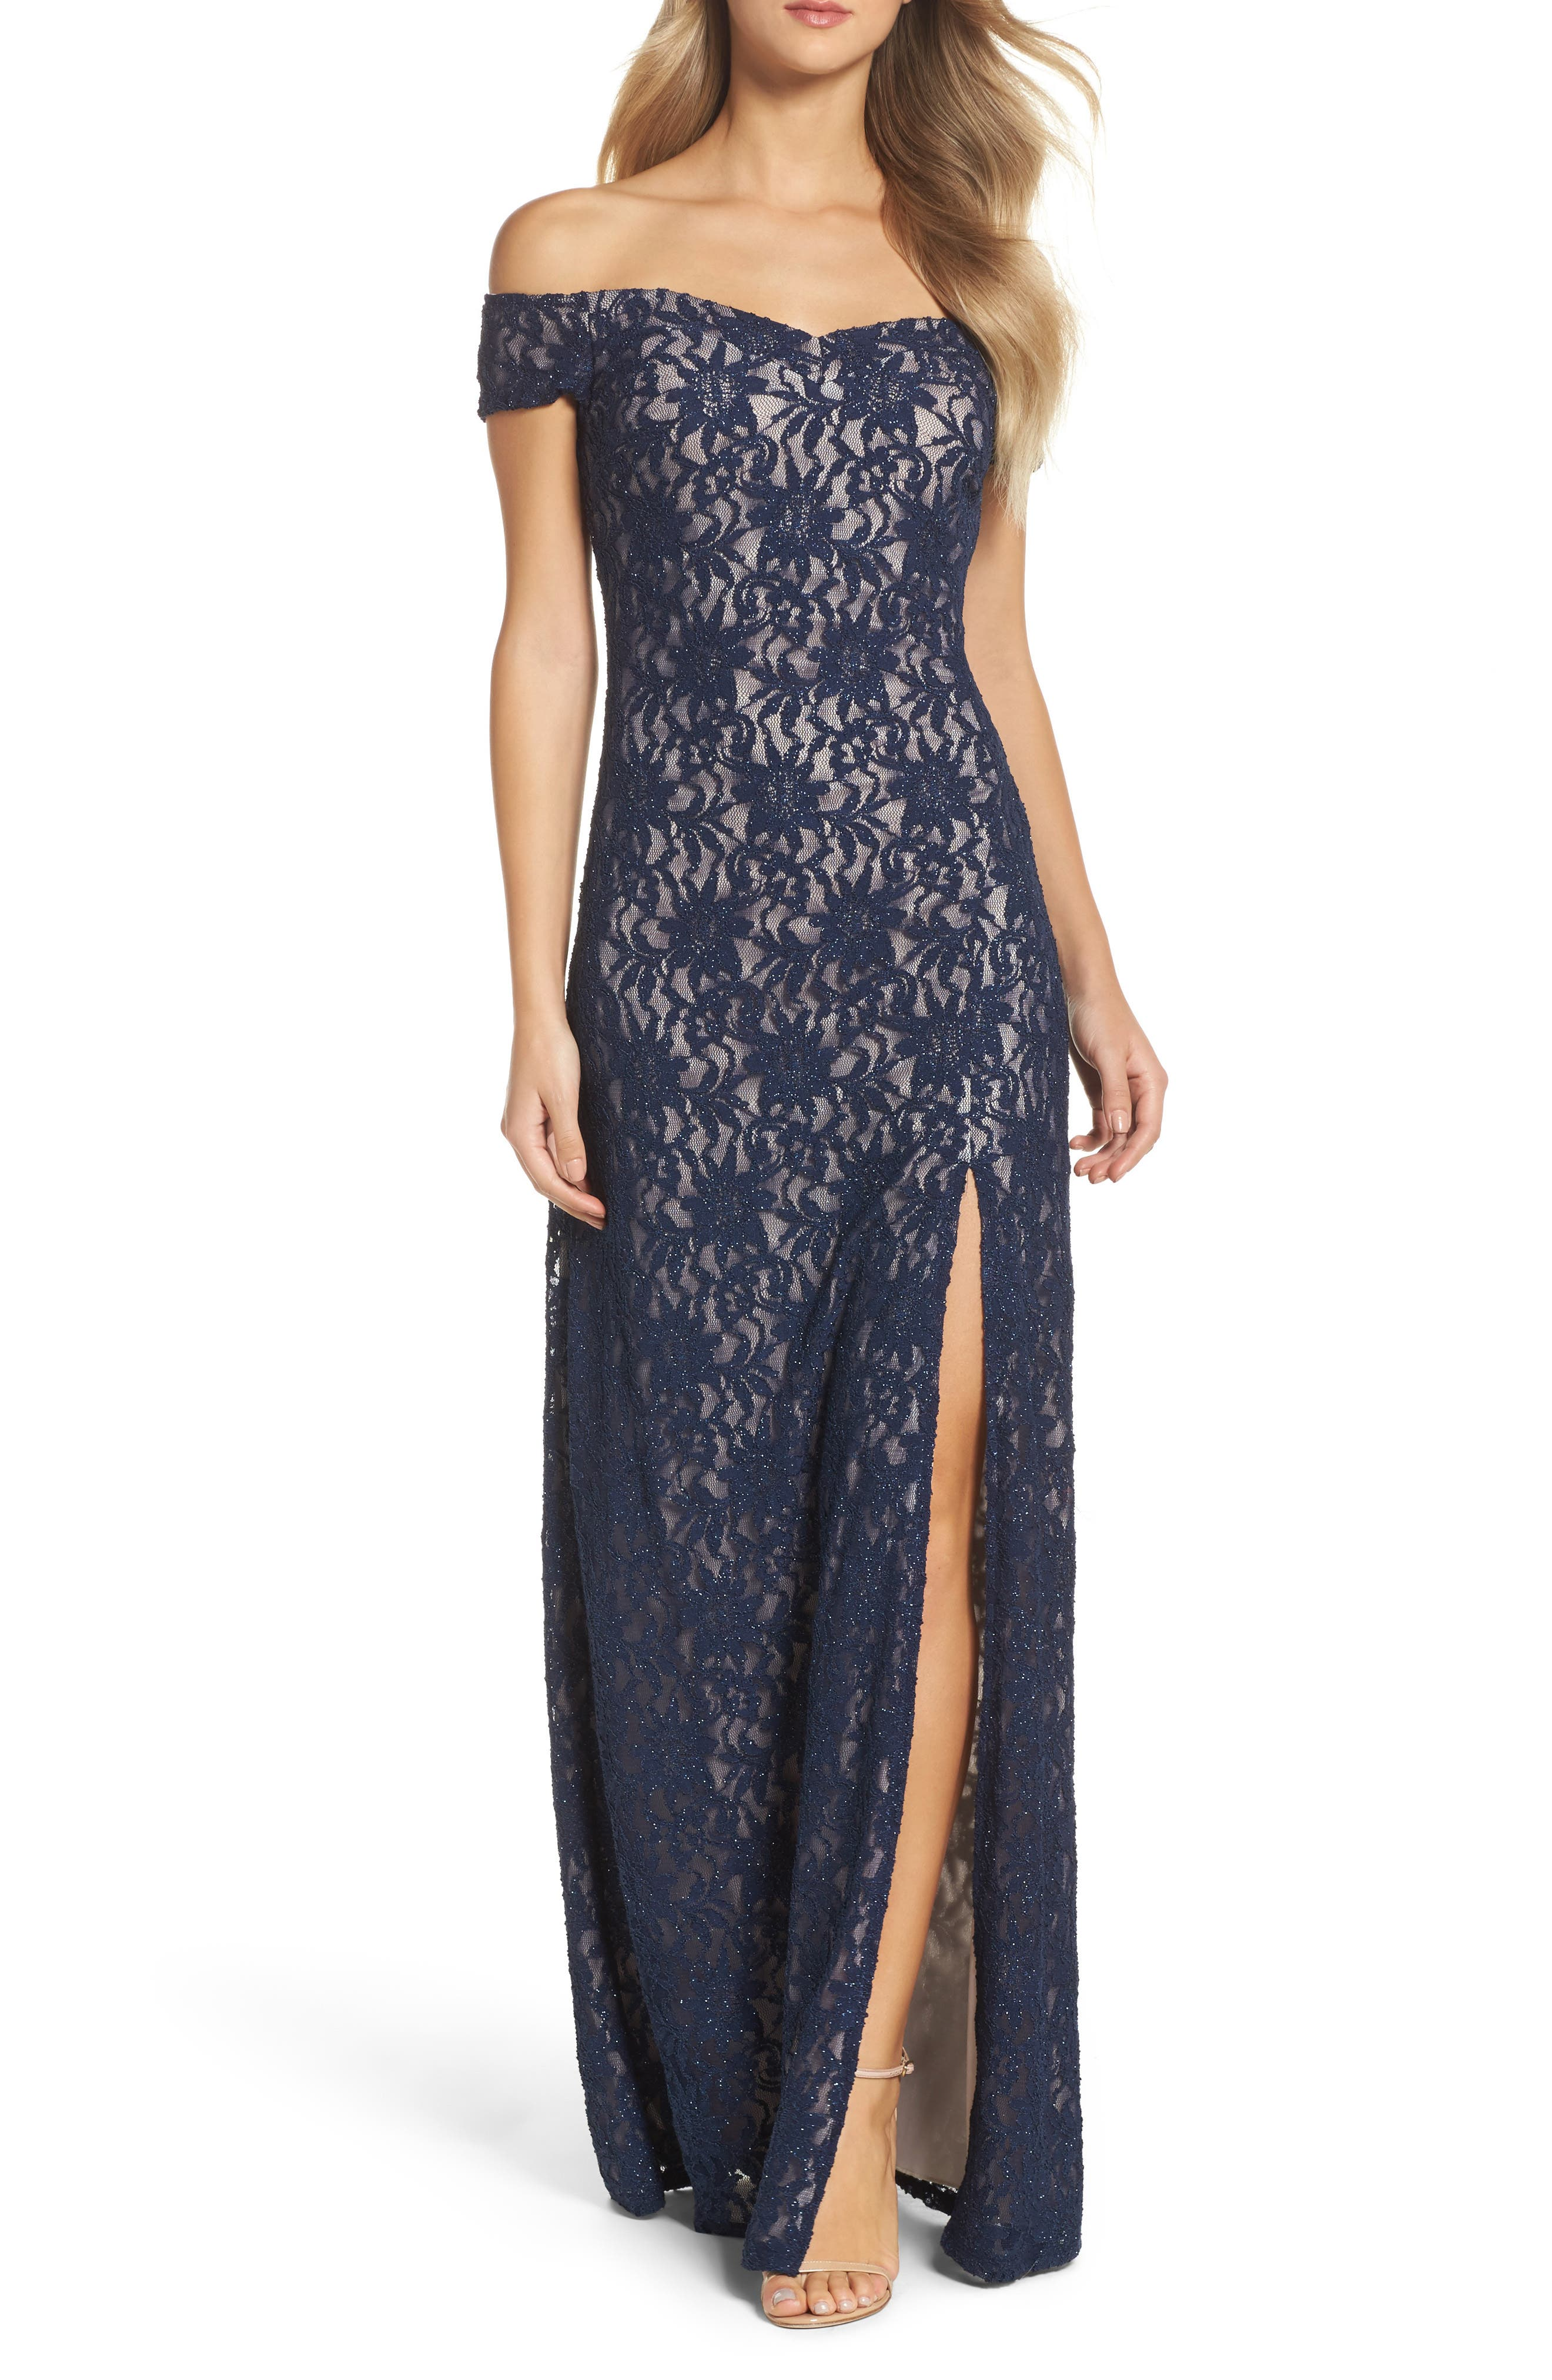 Alternate Image 1 Selected - Sequin Hearts Off the Shoulder Glitter Lace Gown